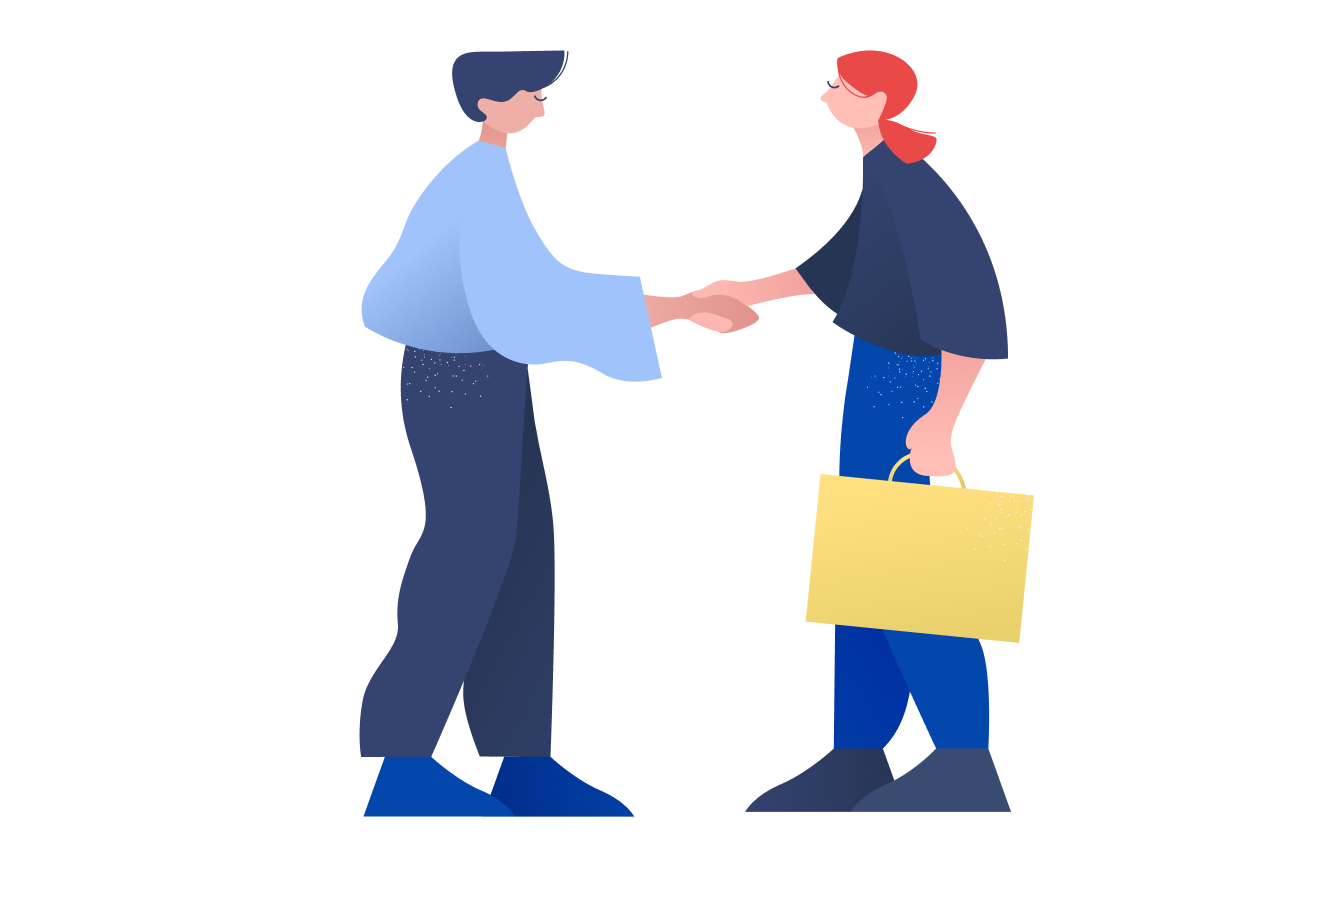 Two workers shaking hands.